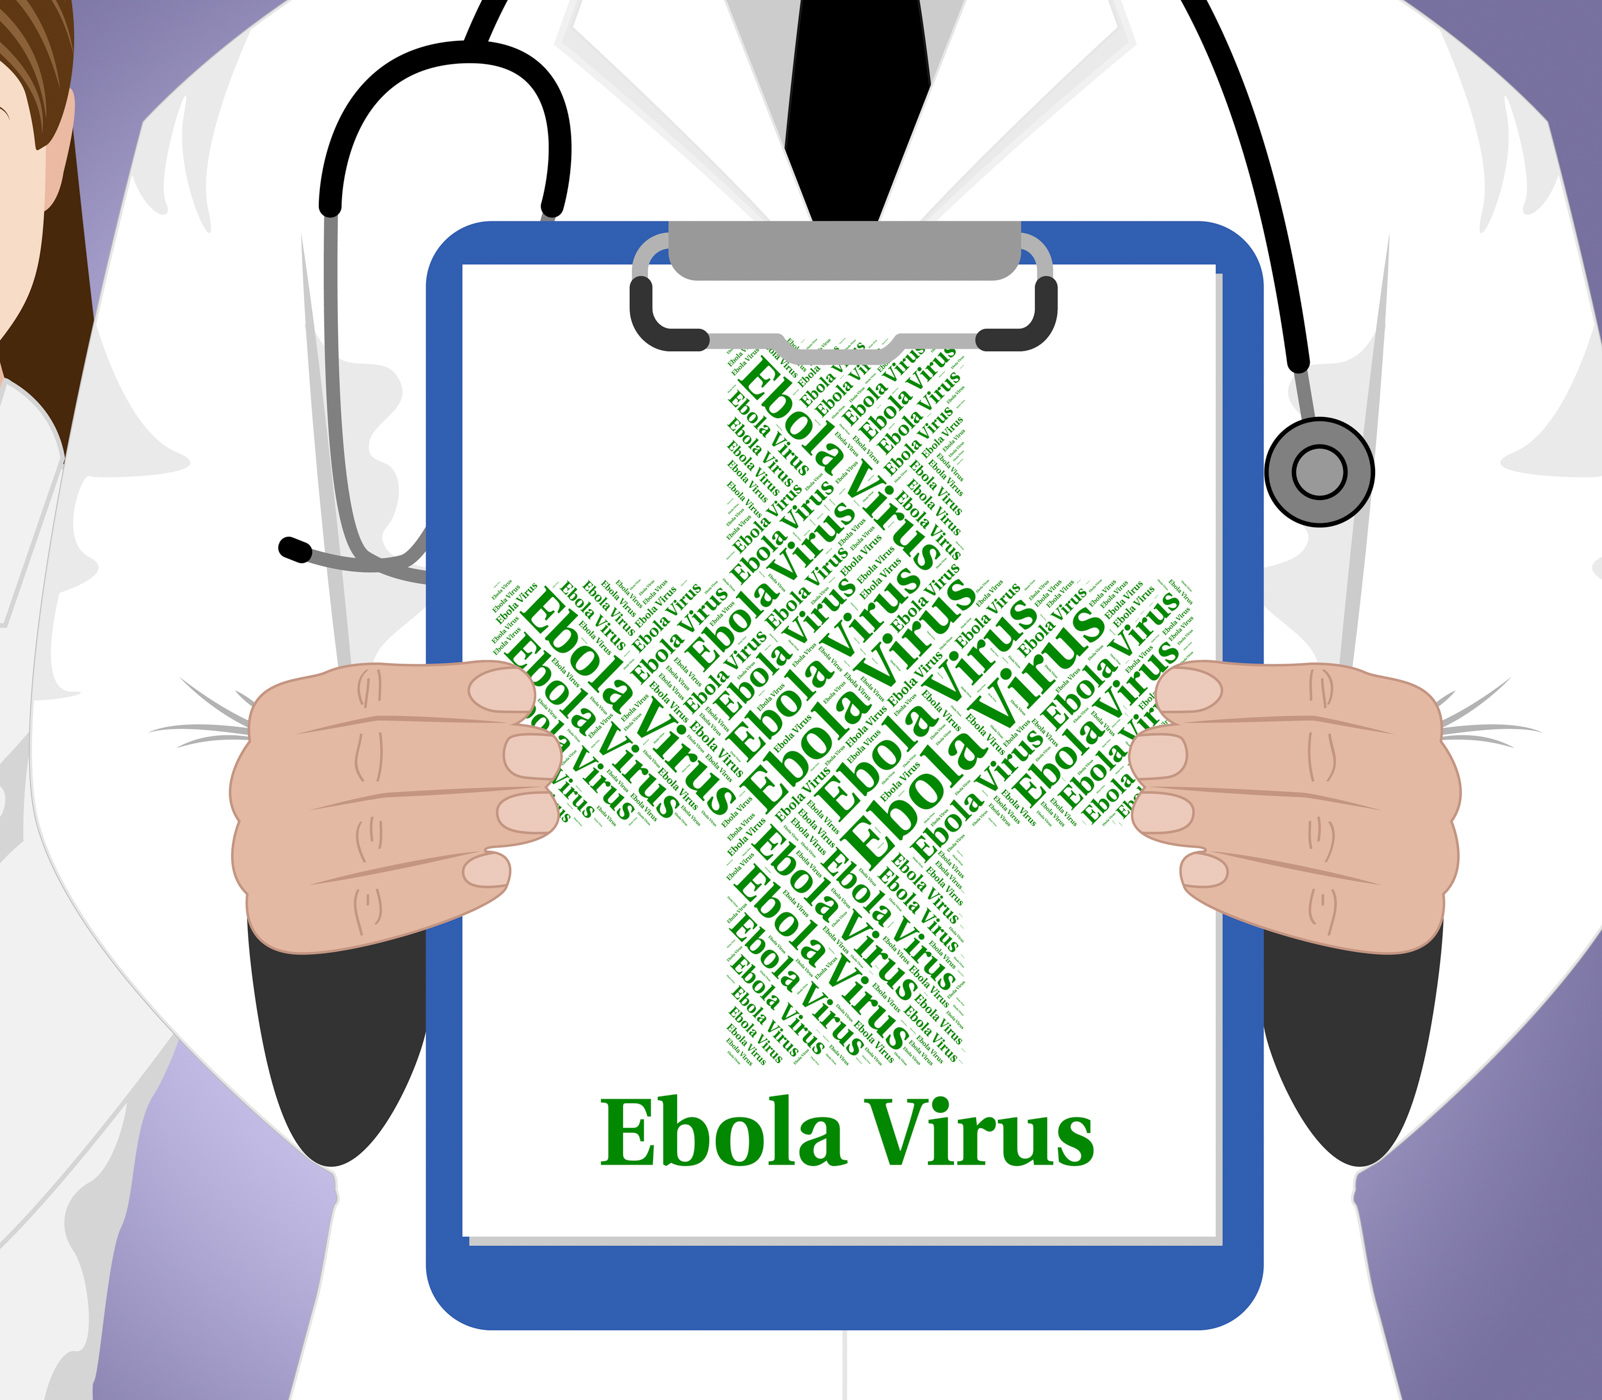 Ebola Virus Represents Poor Health And Contagion, Contagion, Outbreaks, Malady, Microbe, HQ Photo